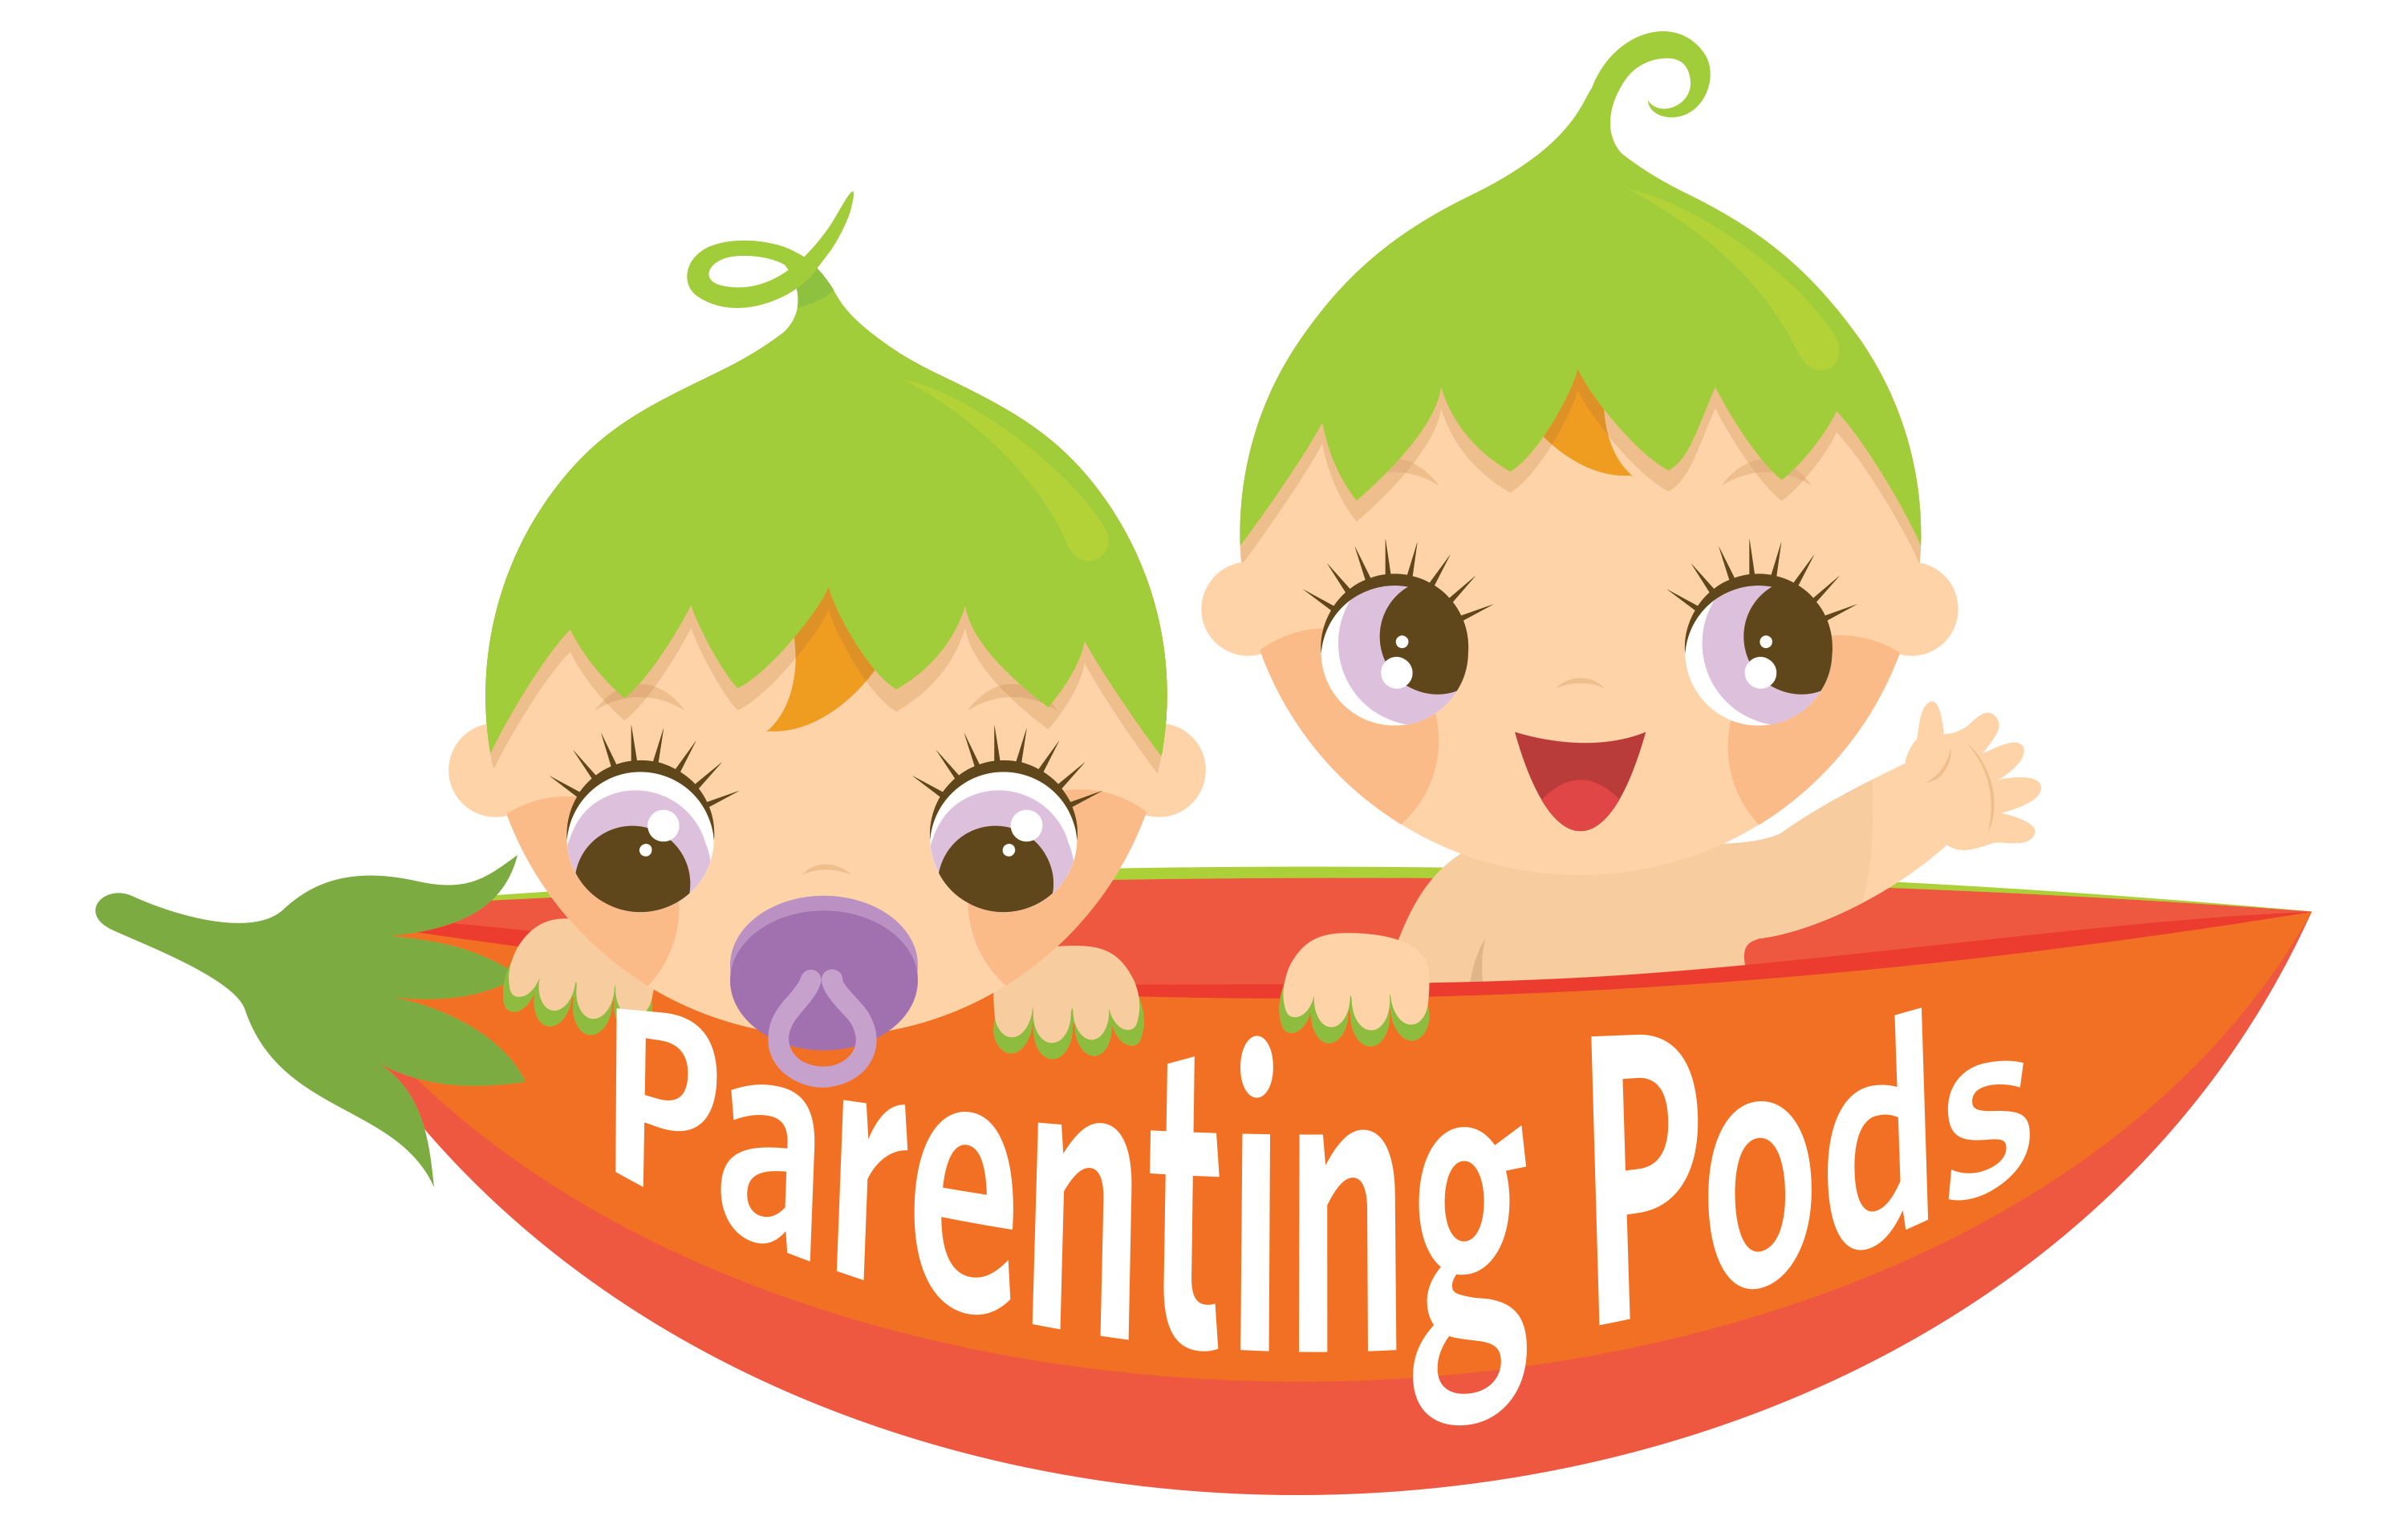 Parenting pods wiseschool wise. Environment clipart conducive learning environment